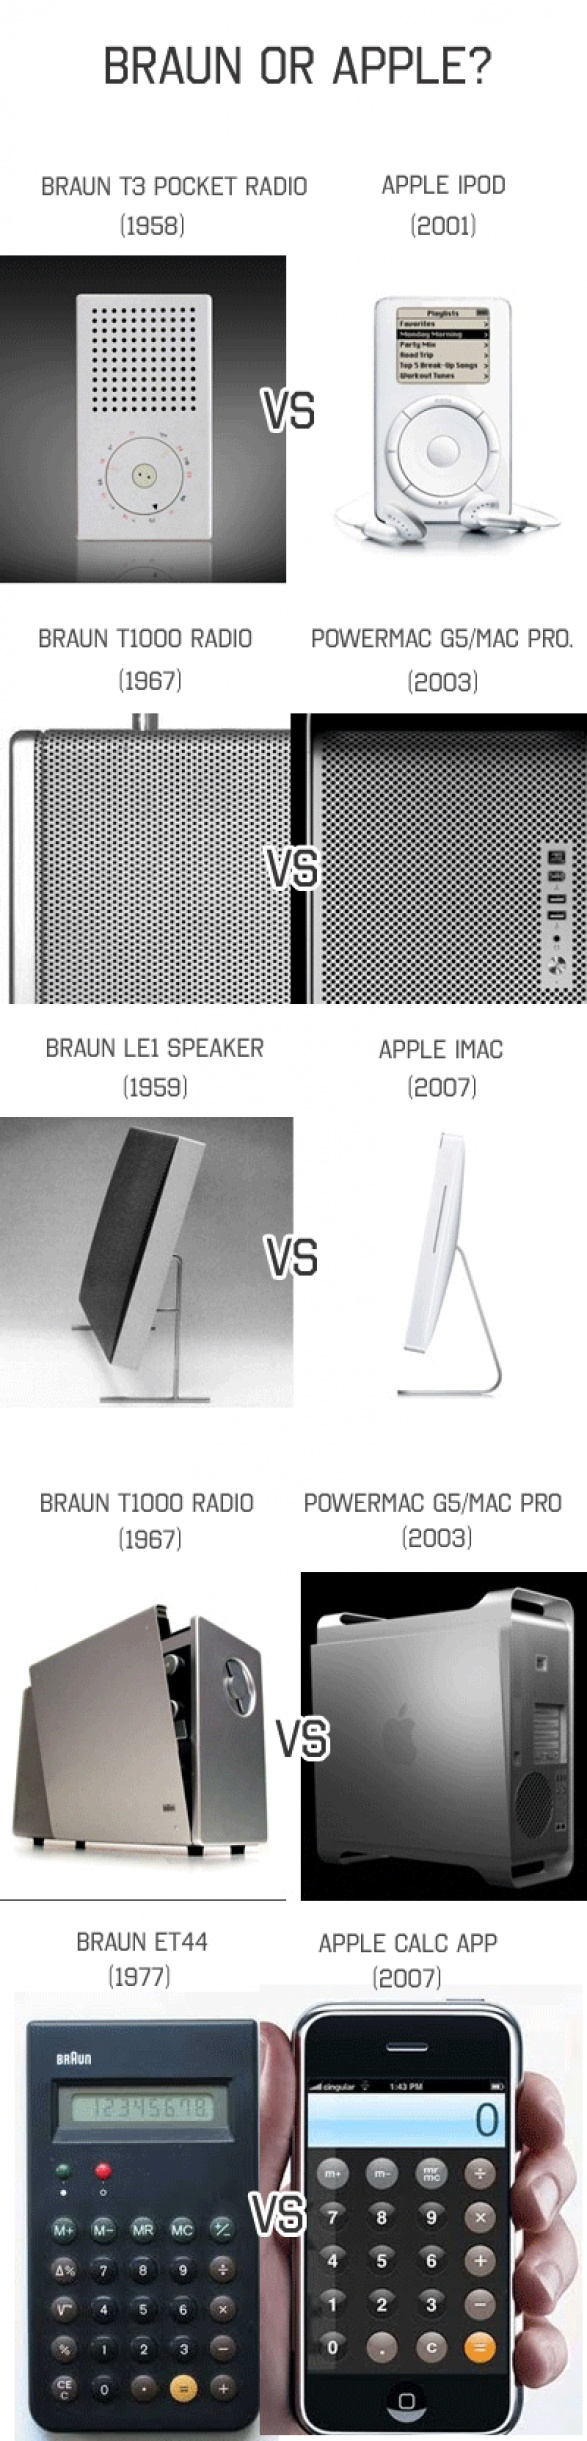 Jony Ive is inspired by Braun's Form Follows Function principles. All creativity is theft. Light up!